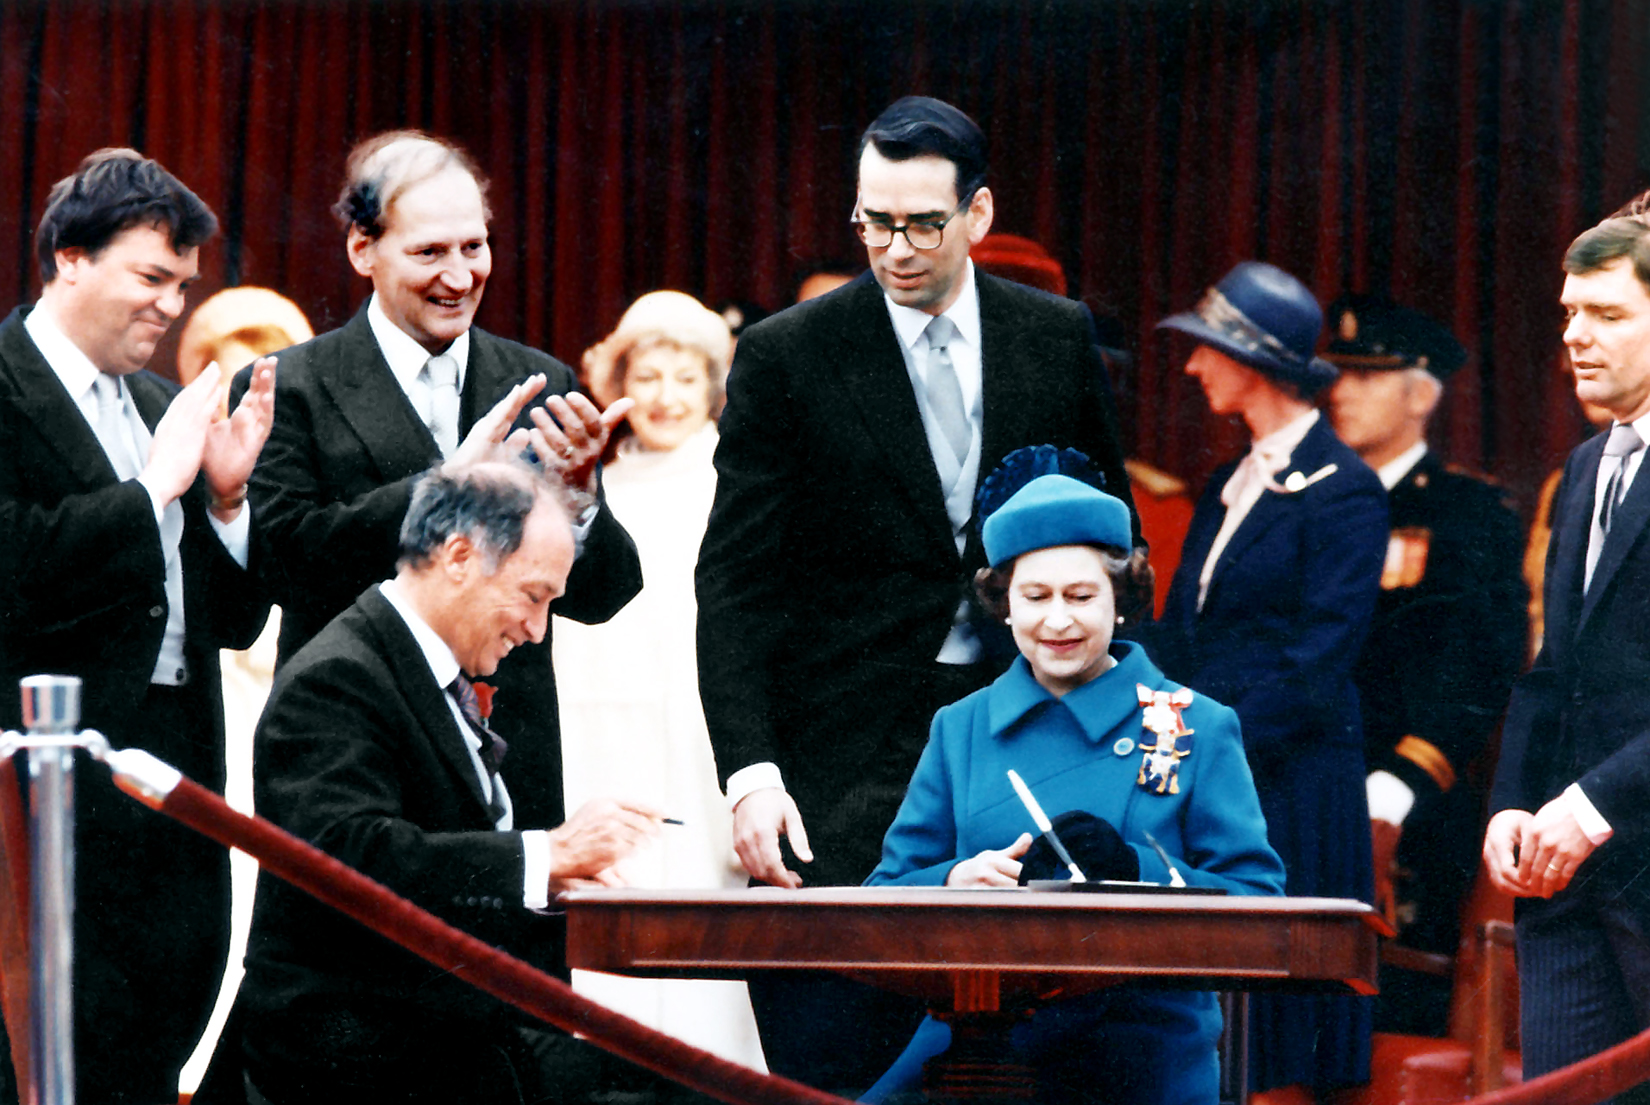 Prime Minister Trudeau and the Queen prepare to sign the Constitution proclamation as Consumer Affairs Minister Ouellet (left), Secretary of State Regan and Privy Council Clerk Pitfield look on.